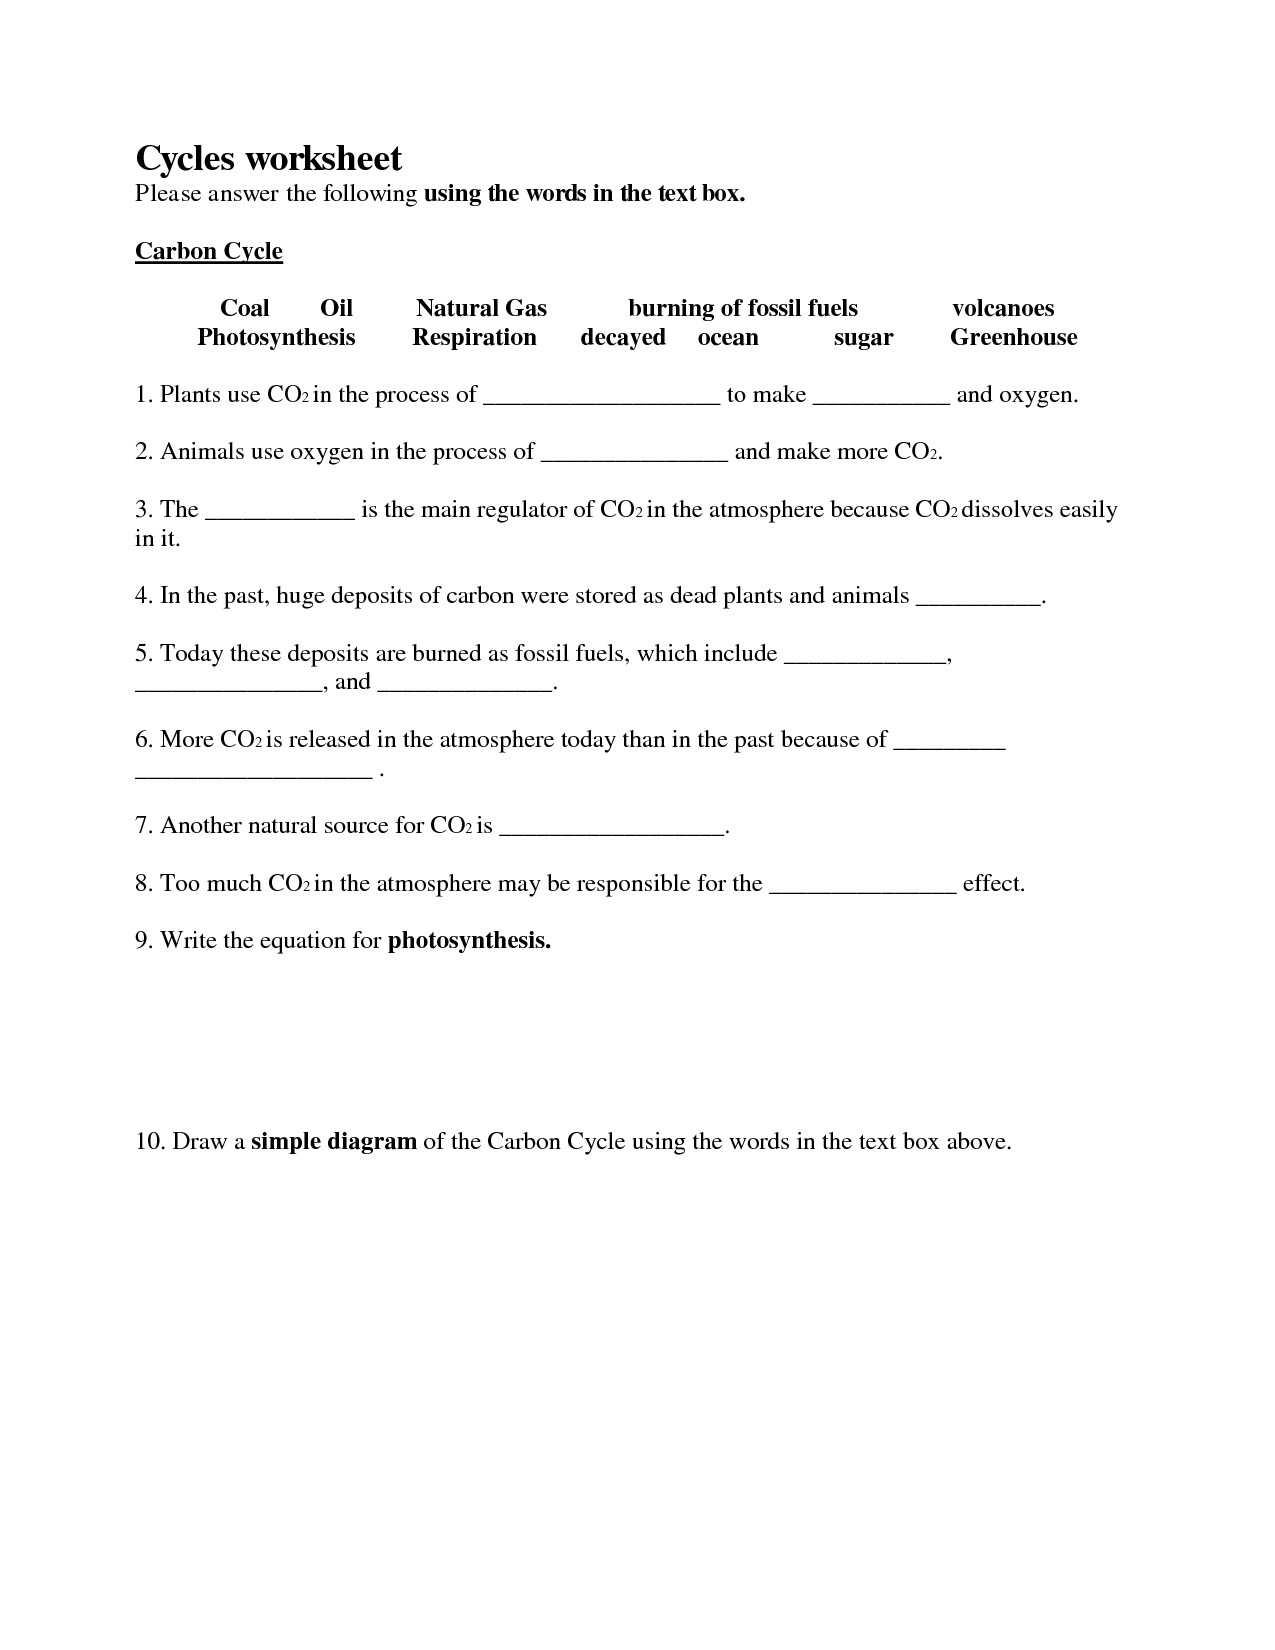 30 Biogeochemical Cycles Worksheet Answers